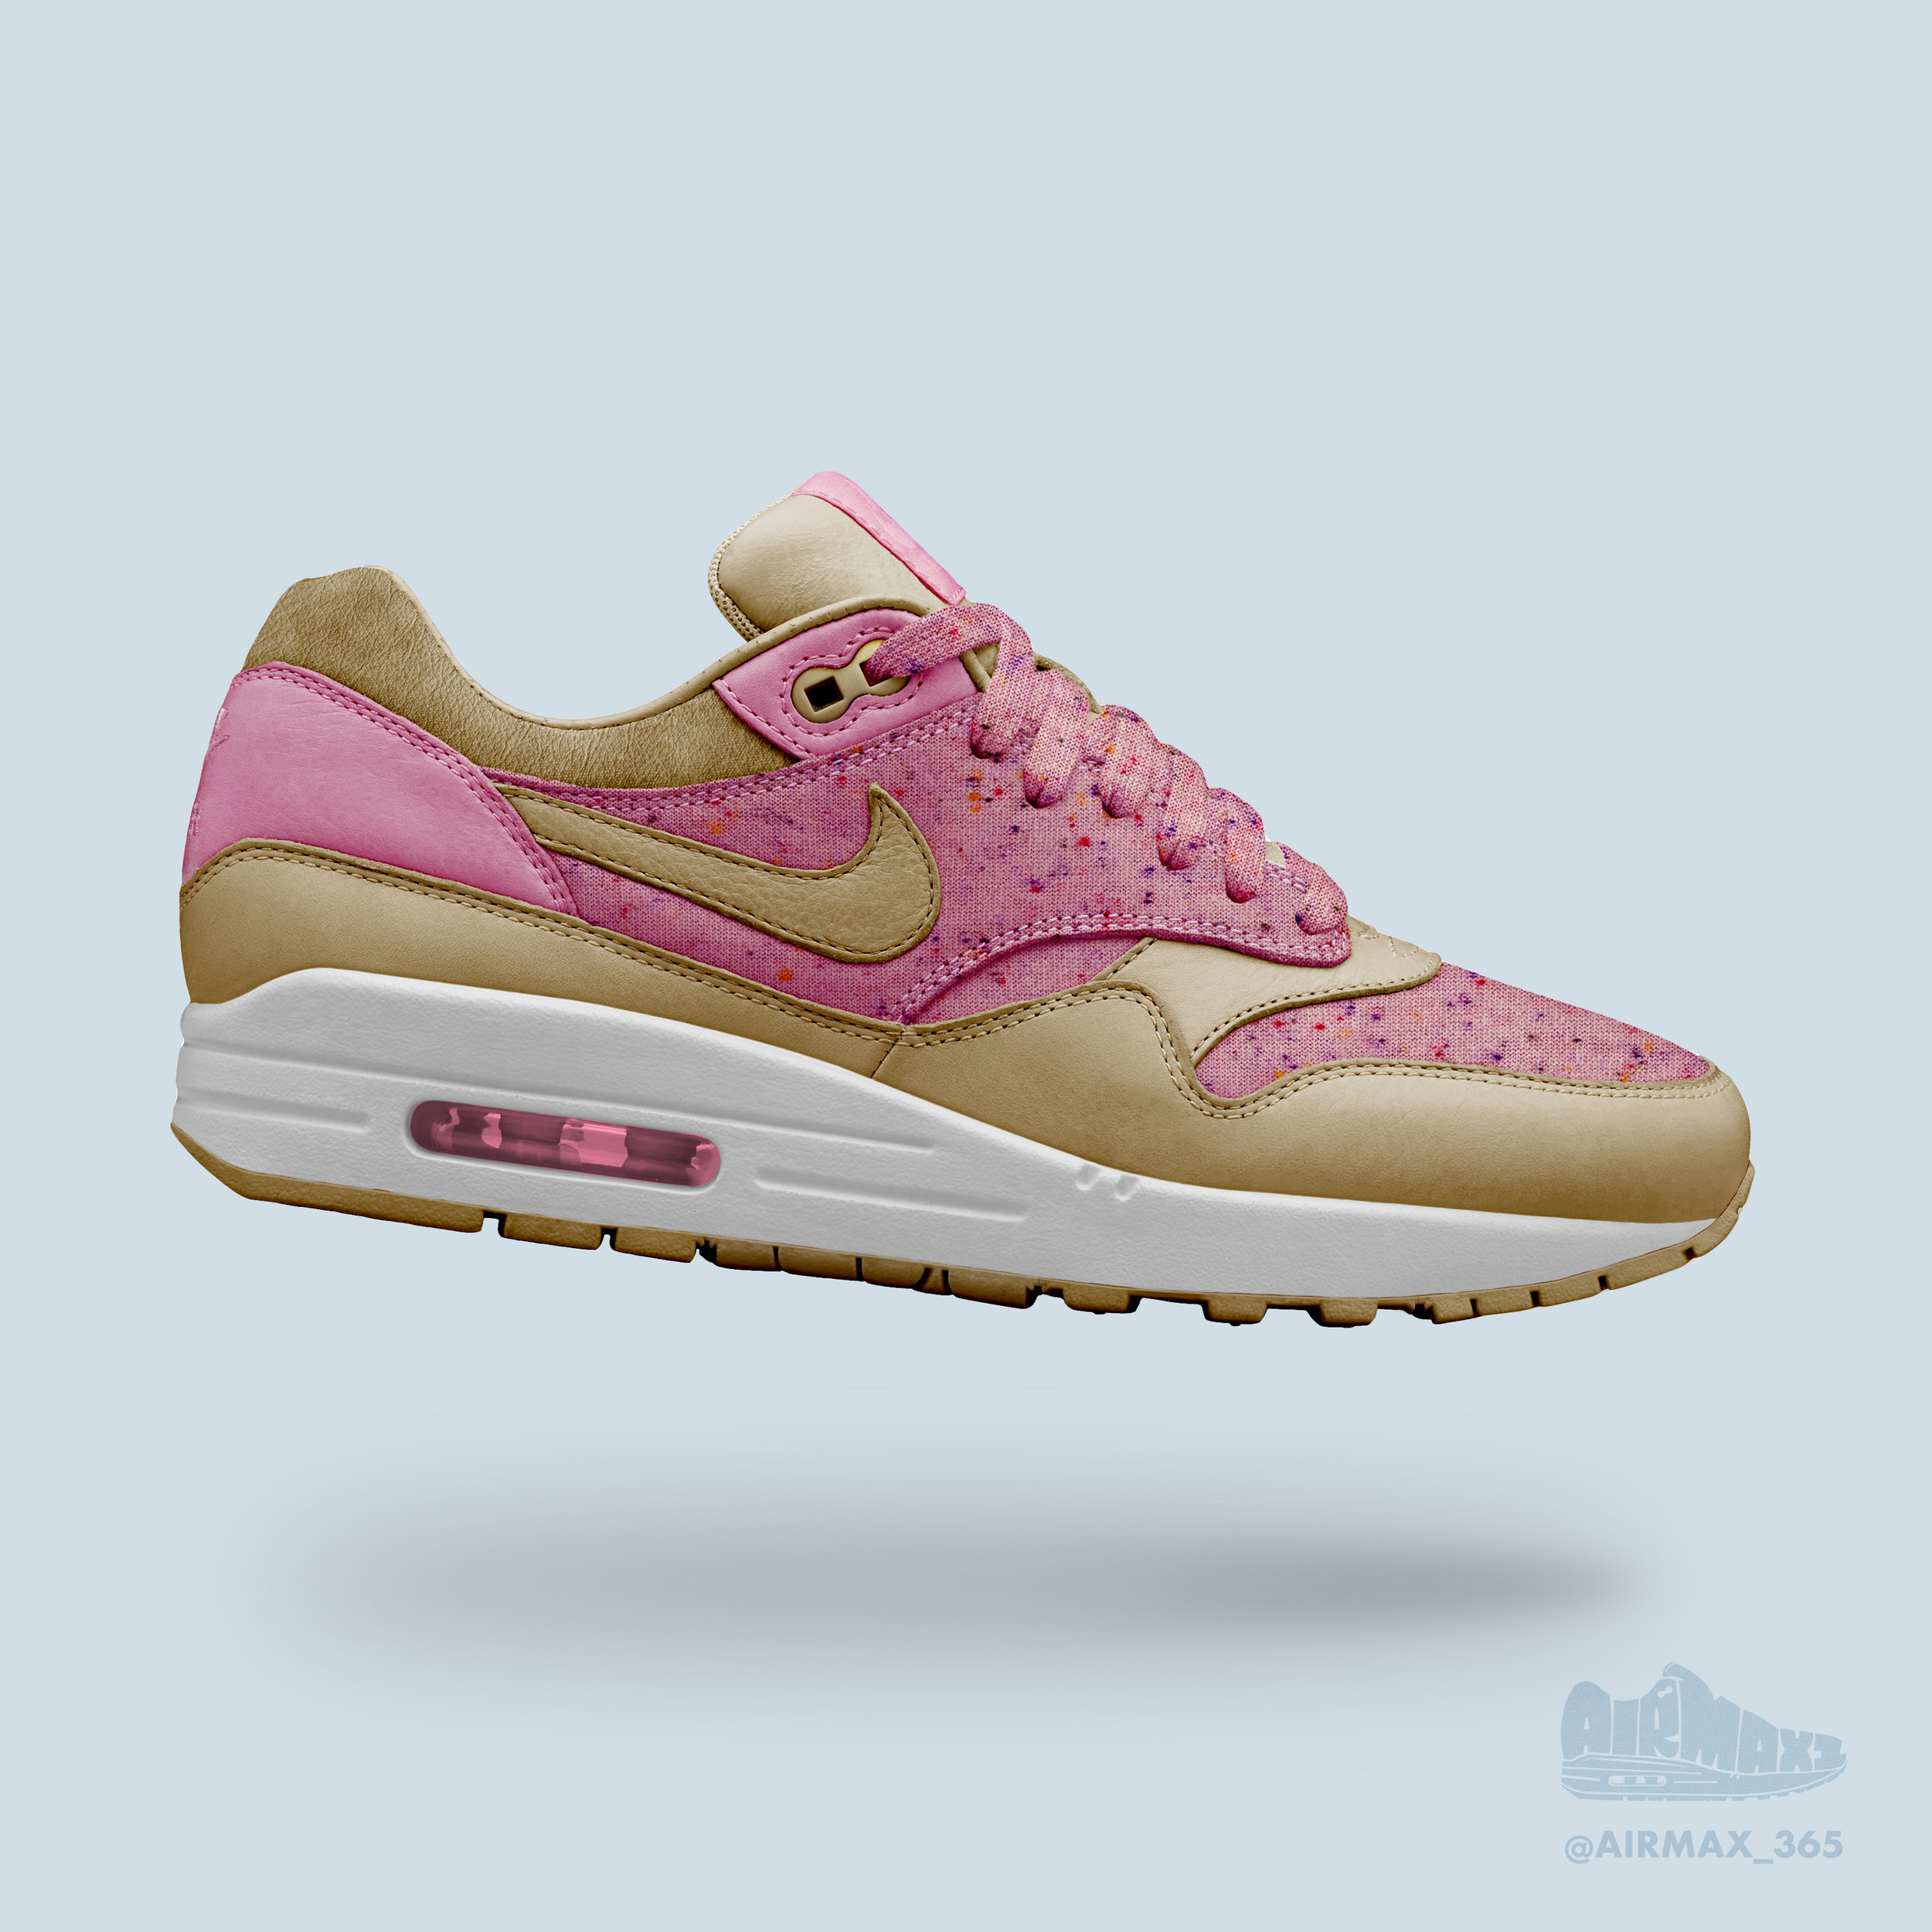 Day 197: Air Max 1 Sprinkle Donut